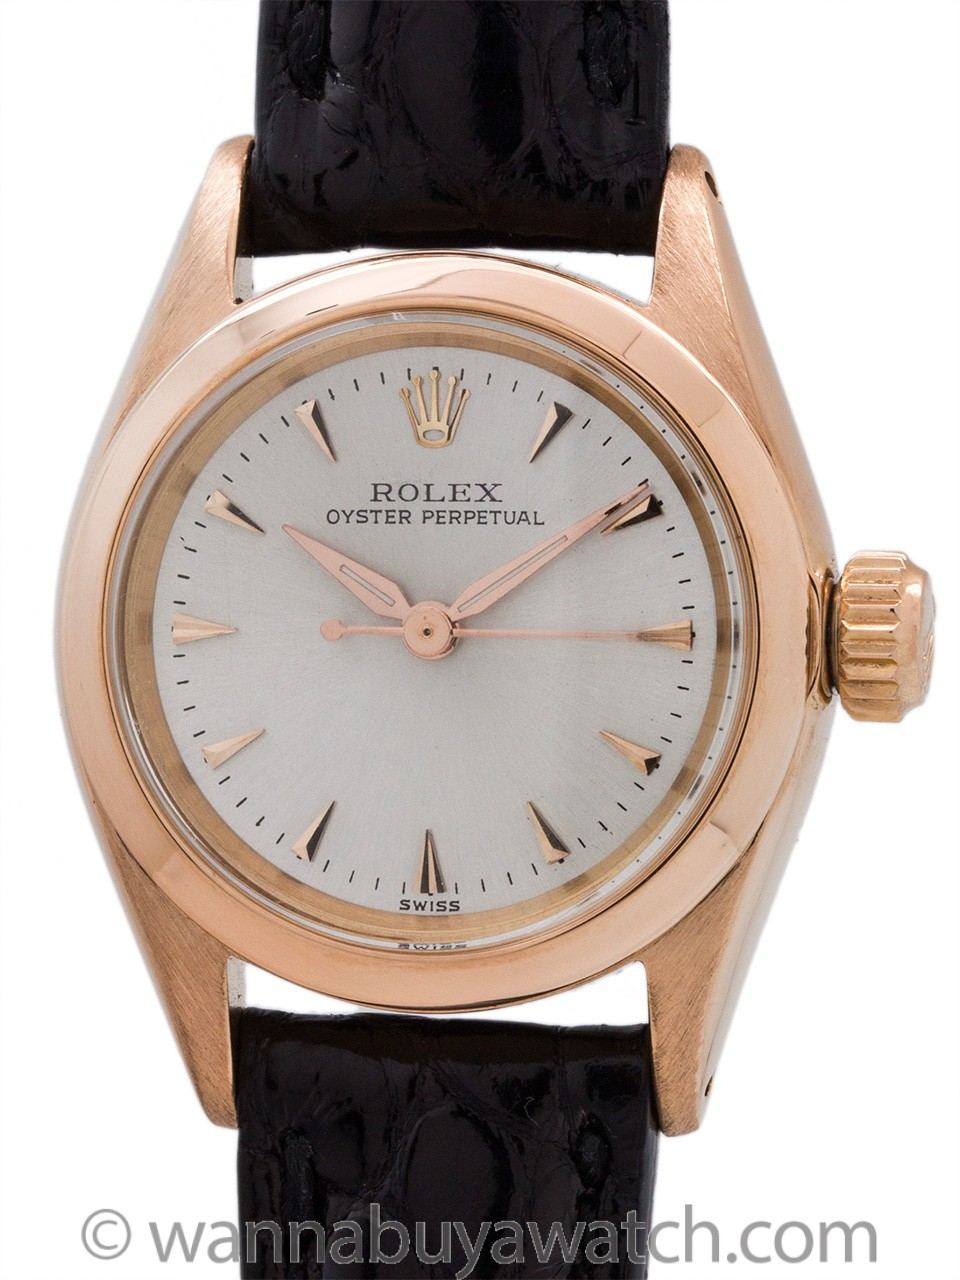 Lady's Rolex 18K Rose Gold Oyster Perpetual ref 6619 circa 1960